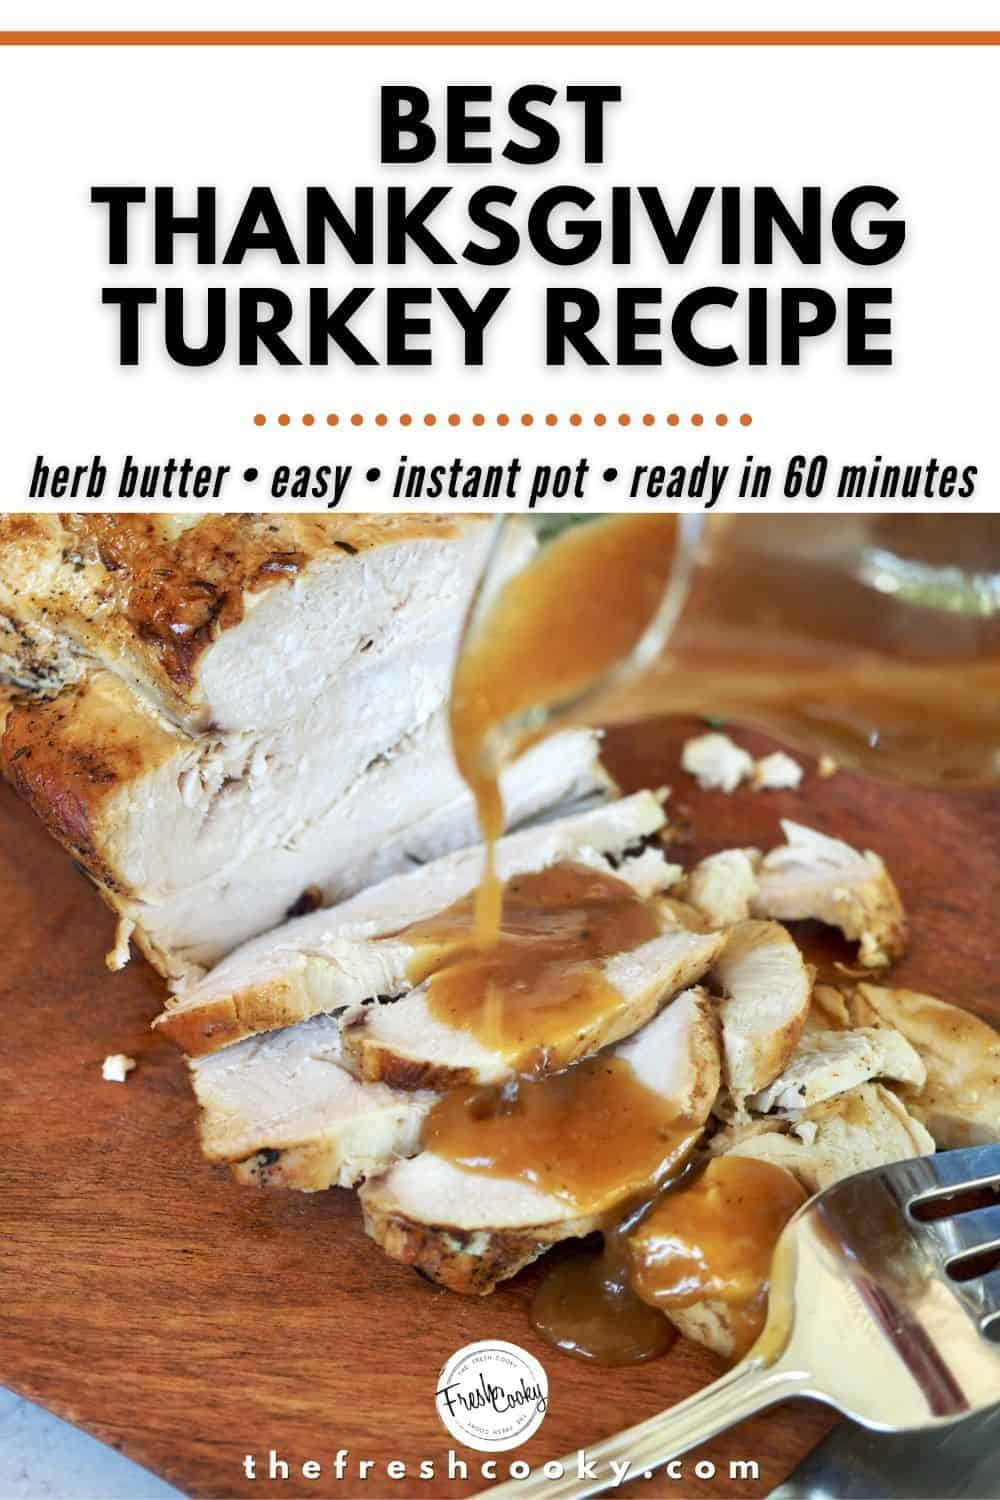 Easy Instant Pot Turkey Breast with pan Gravy recipe from The Fresh Cooky. Your Thanksgiving turkey is an hour away. Yes! You read that correctly! Juicy, perfect Thanksgiving turkey in no time with this Award Winning Turkey Breast Recipe. Roasted, herb butter boneless turkey breast. You can even cook from frozen (though it will take longer). #thefreshcooky #thanksgivingdinner #turkeydinner  via @thefreshcooky